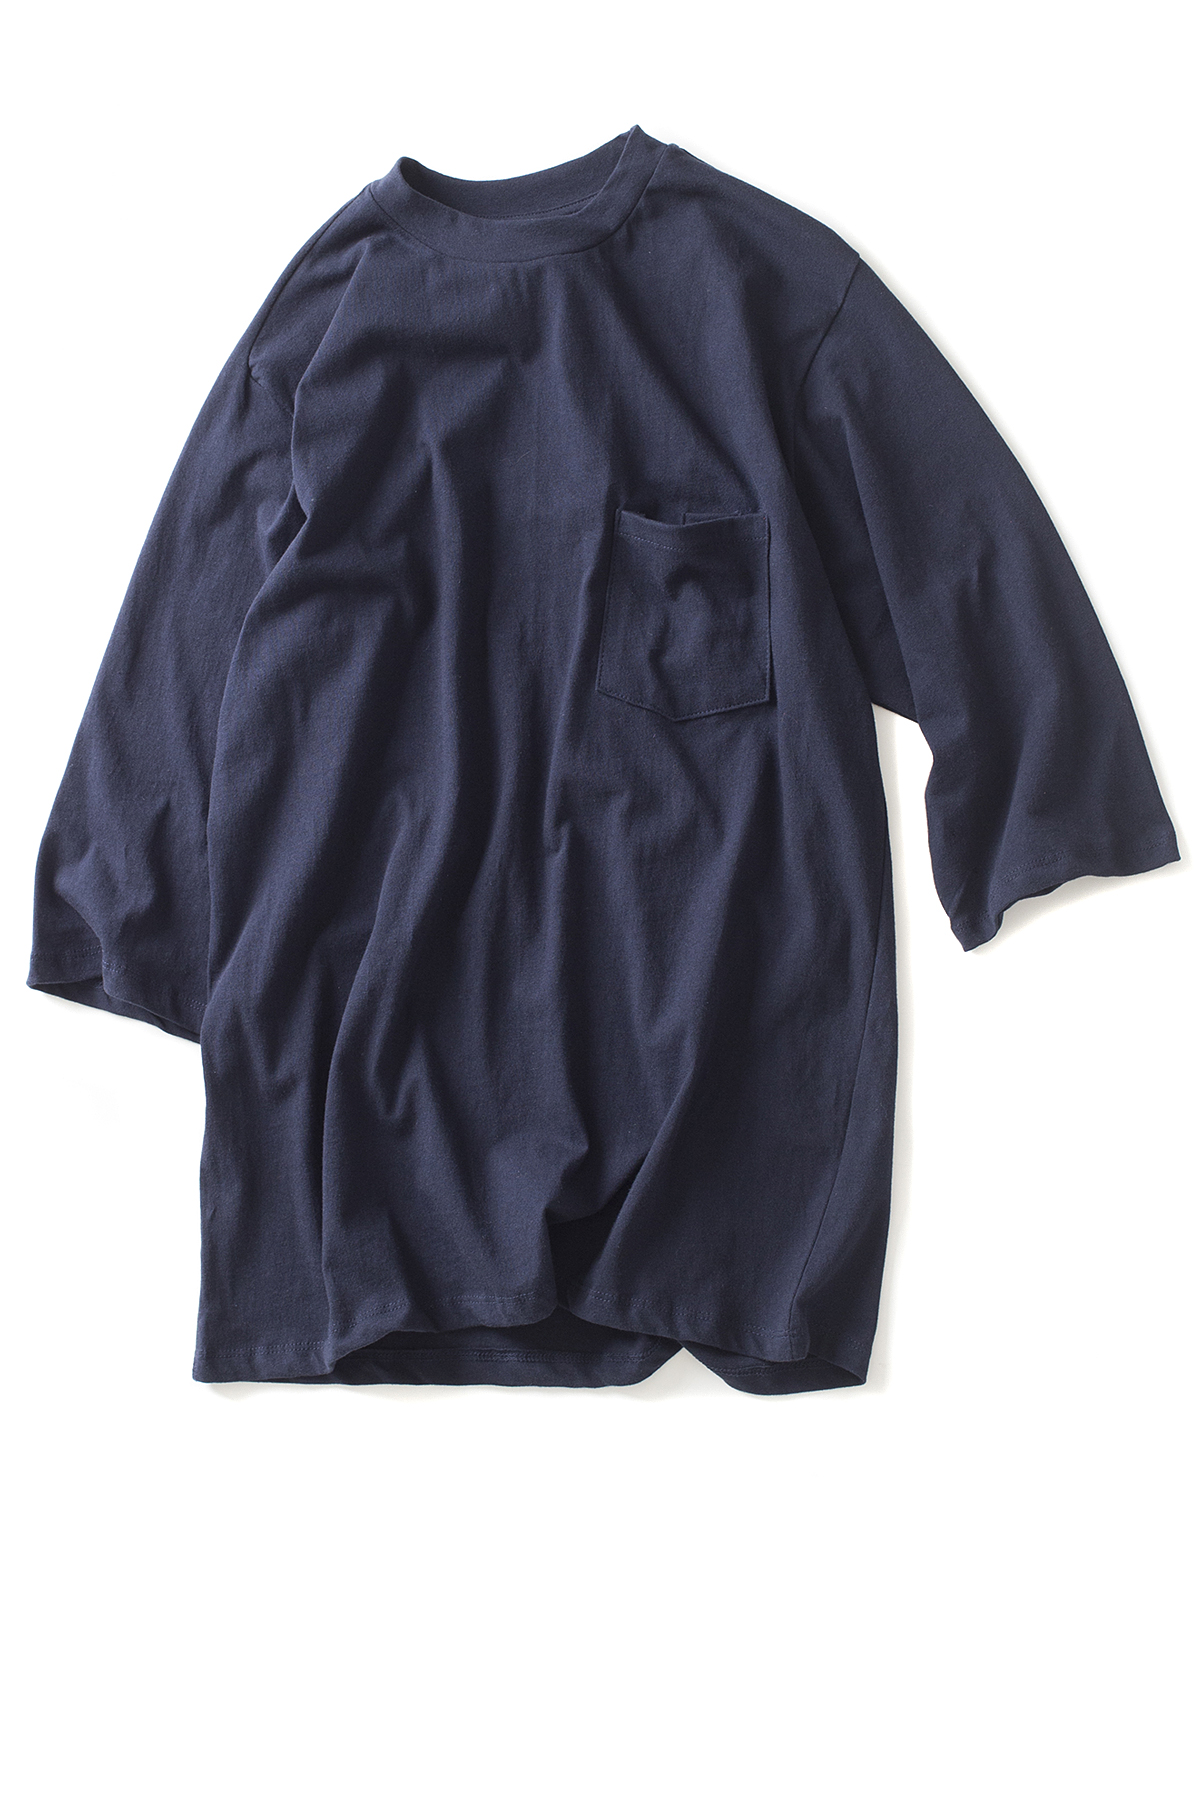 forumwear : One Side Raglan T-Shirt (Navy)